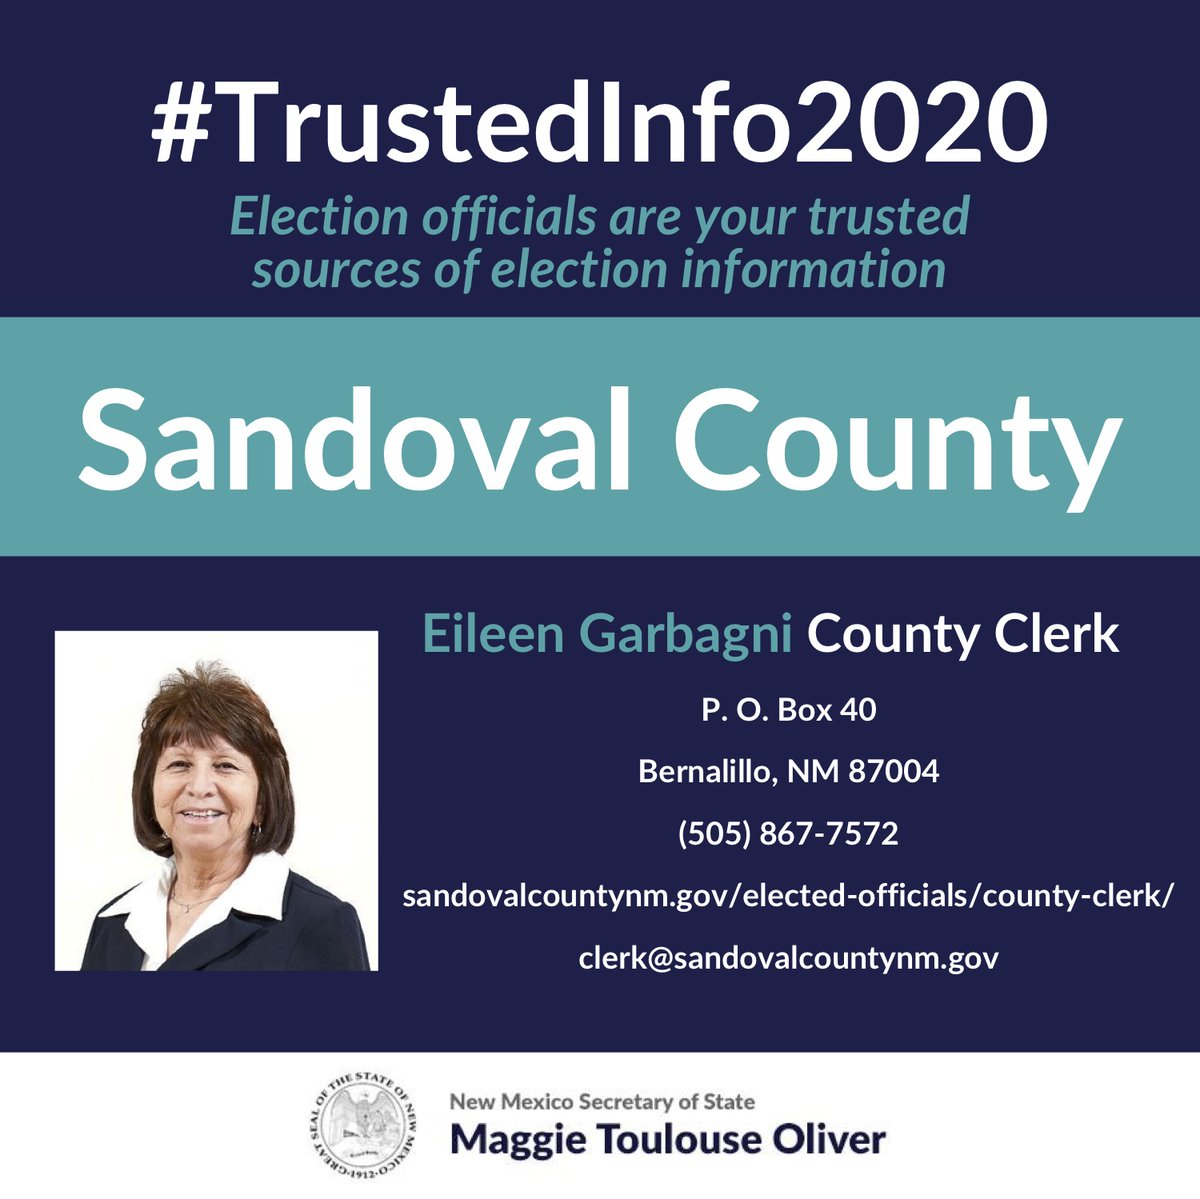 Today we're highlighting the Sandoval County Clerk's Office & Clerk Eileen Garbagni. Election officials are your sources for #TrustedInfo2020. Reach out to them w questions re: absentee voting, voter registration, polling locations & much more.    #nmpol